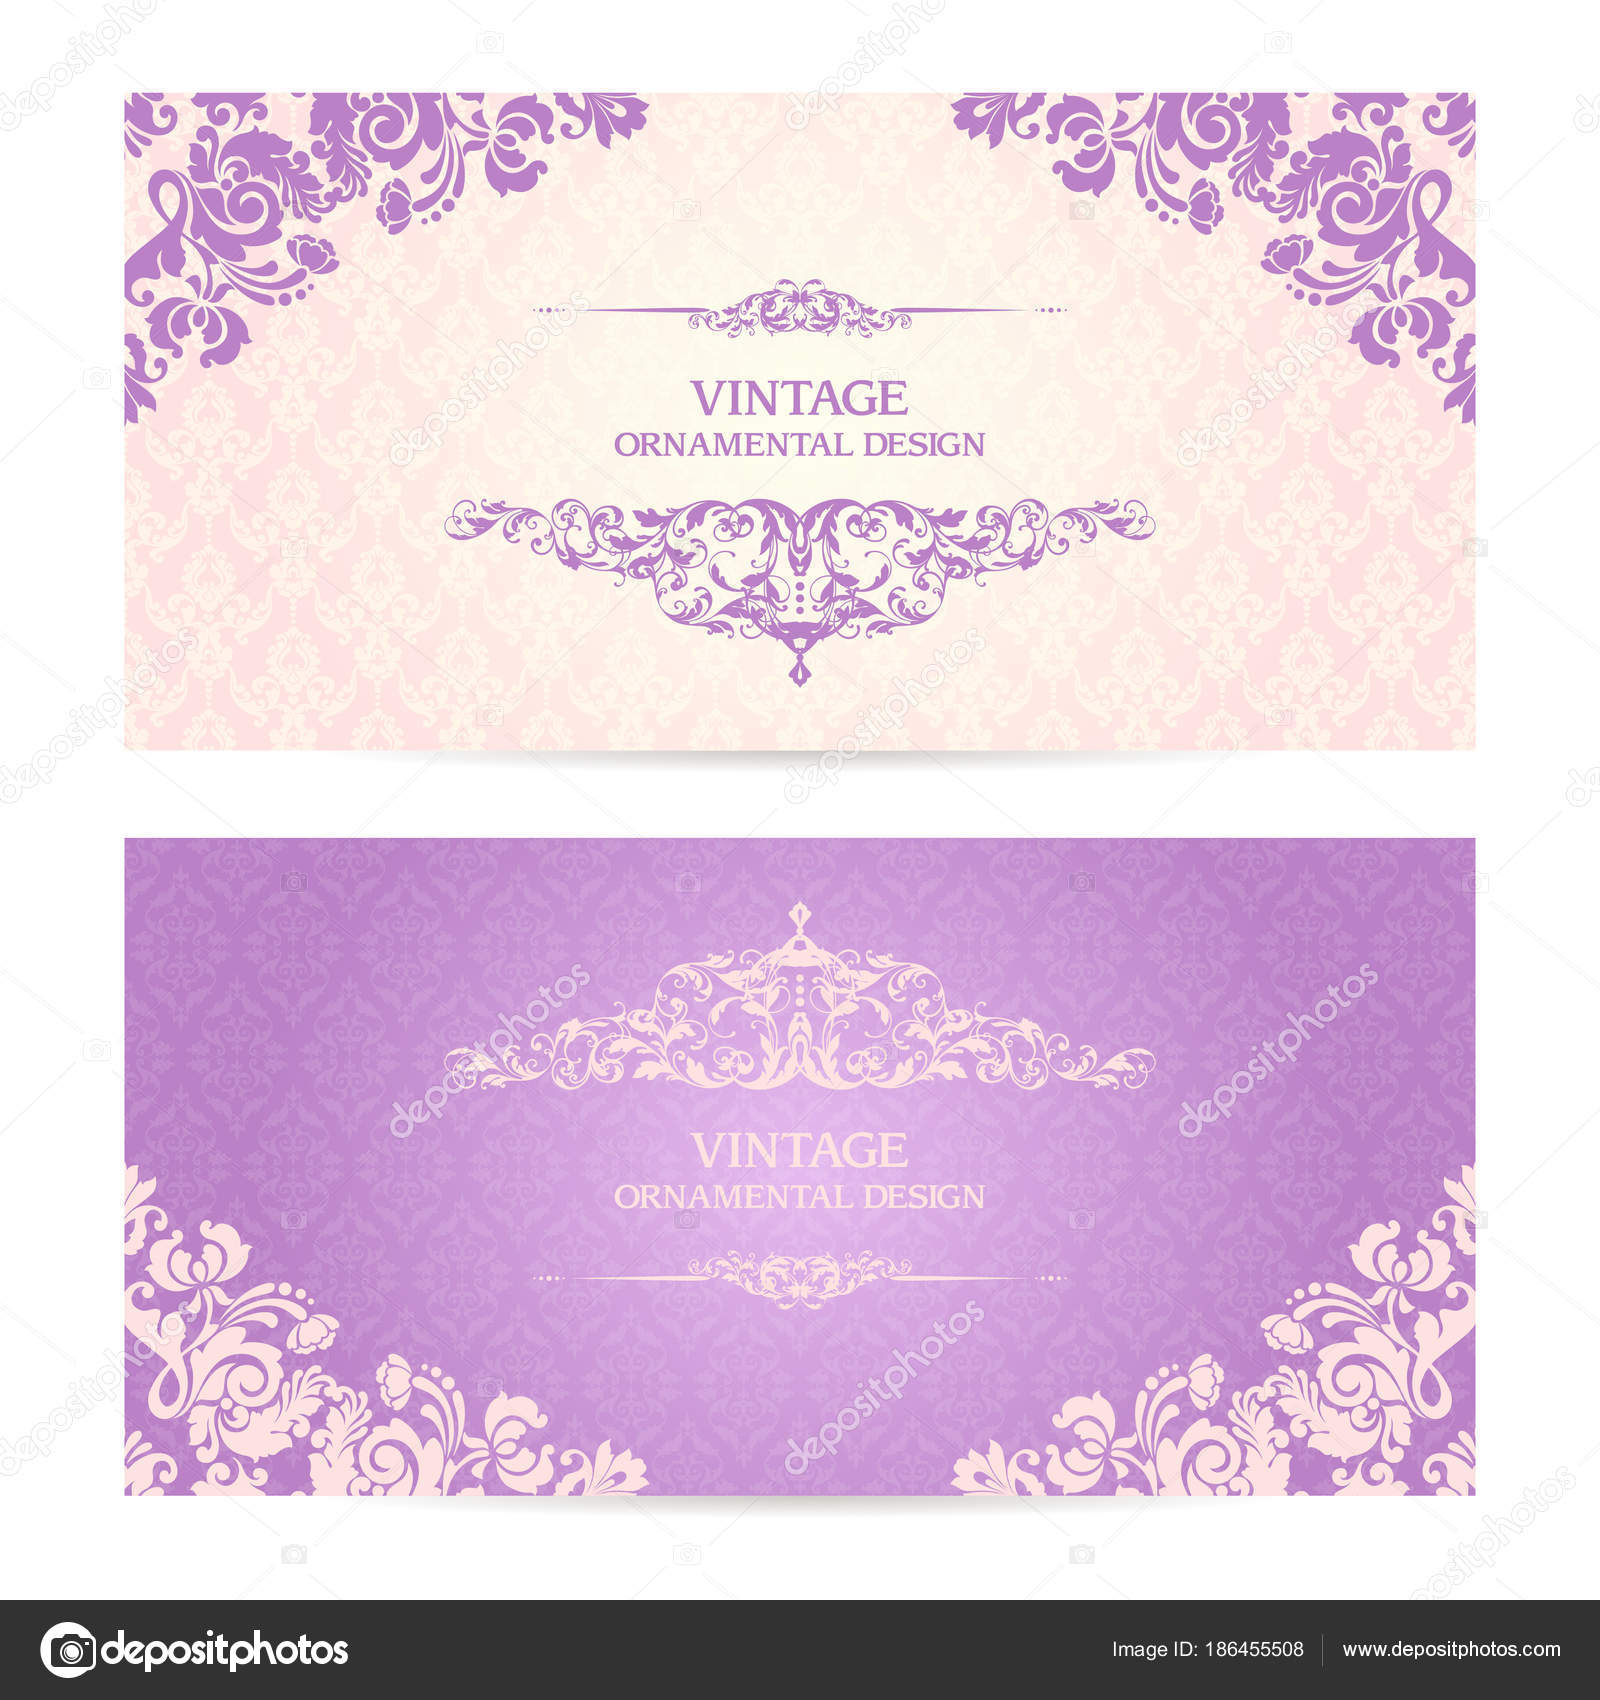 Vintage set of template ornamental borders and patterned background vintage set of template ornamental borders and patterned background elegant lace wedding invitation design stopboris Gallery